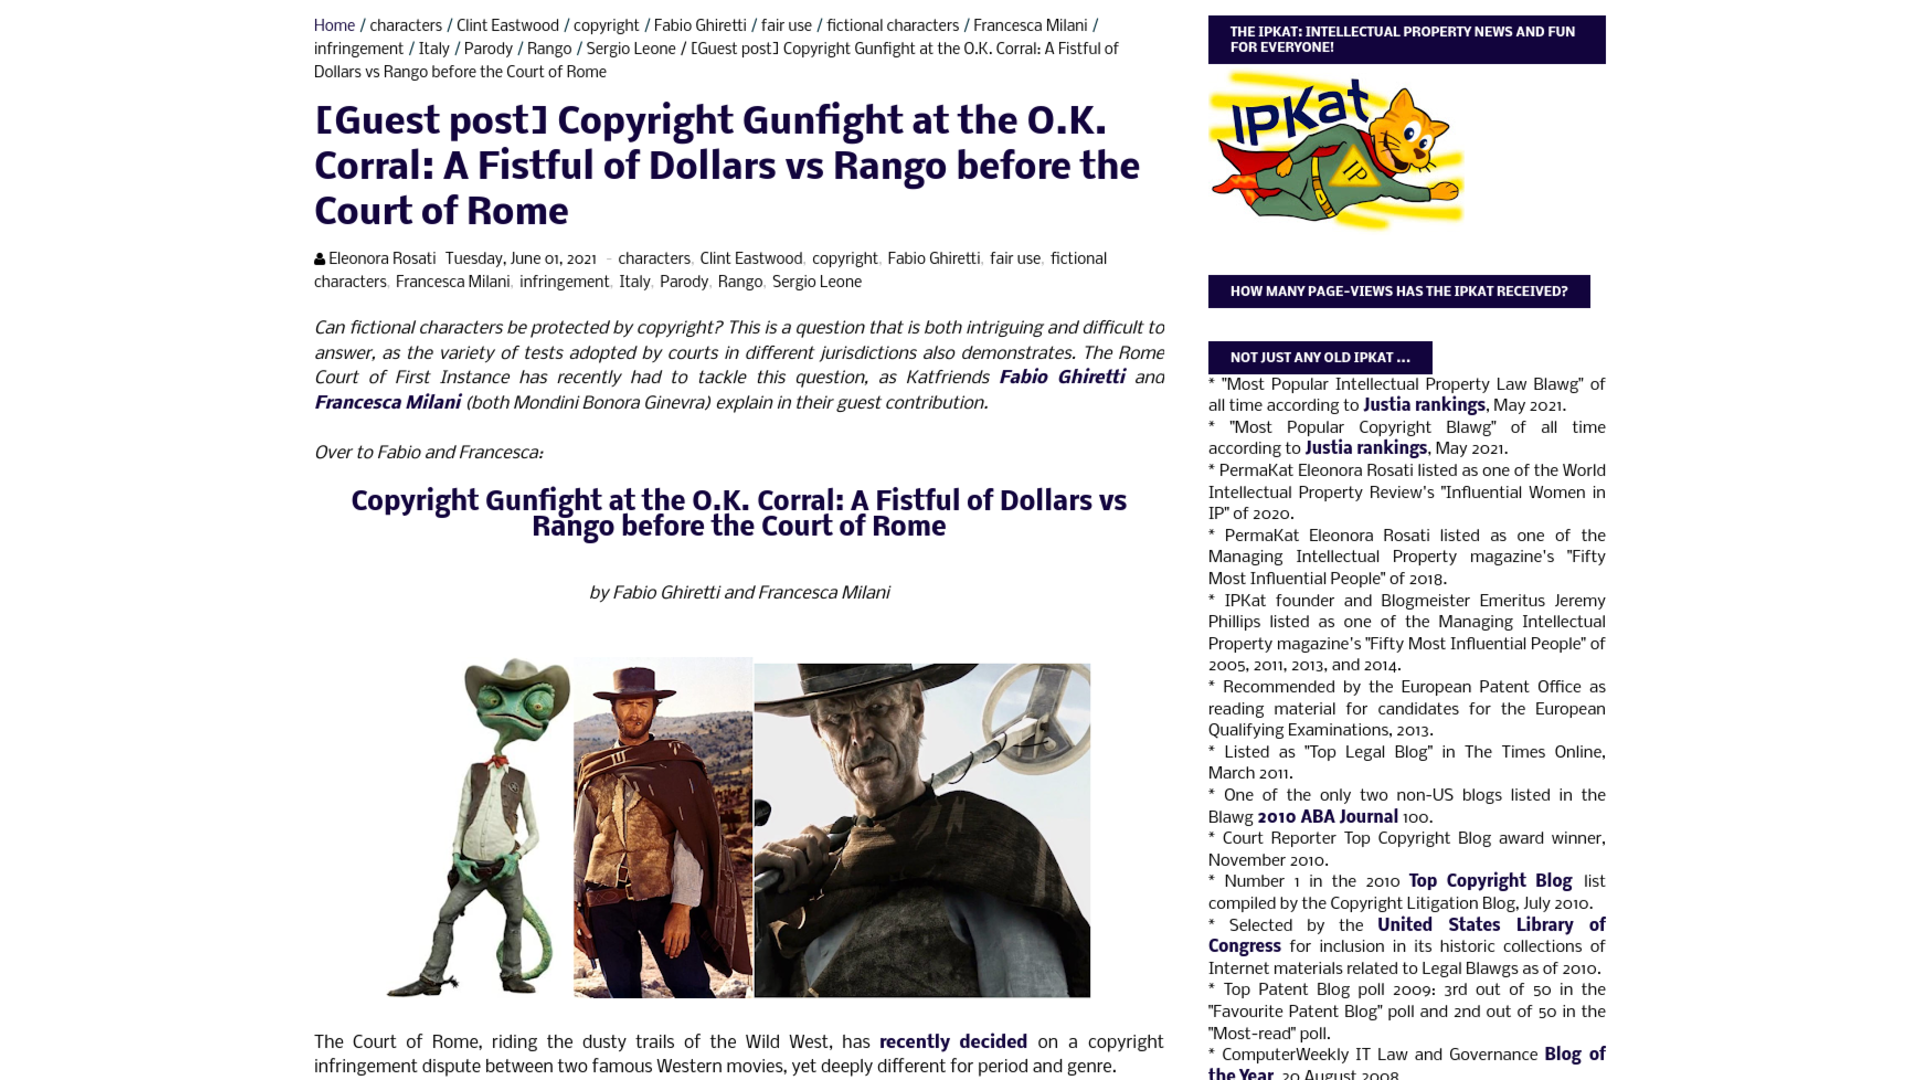 Fairness Rocks News Copyright Gunfight at the O.K. Corral: A Fistful of Dollars vs Rango before the Court of Rome